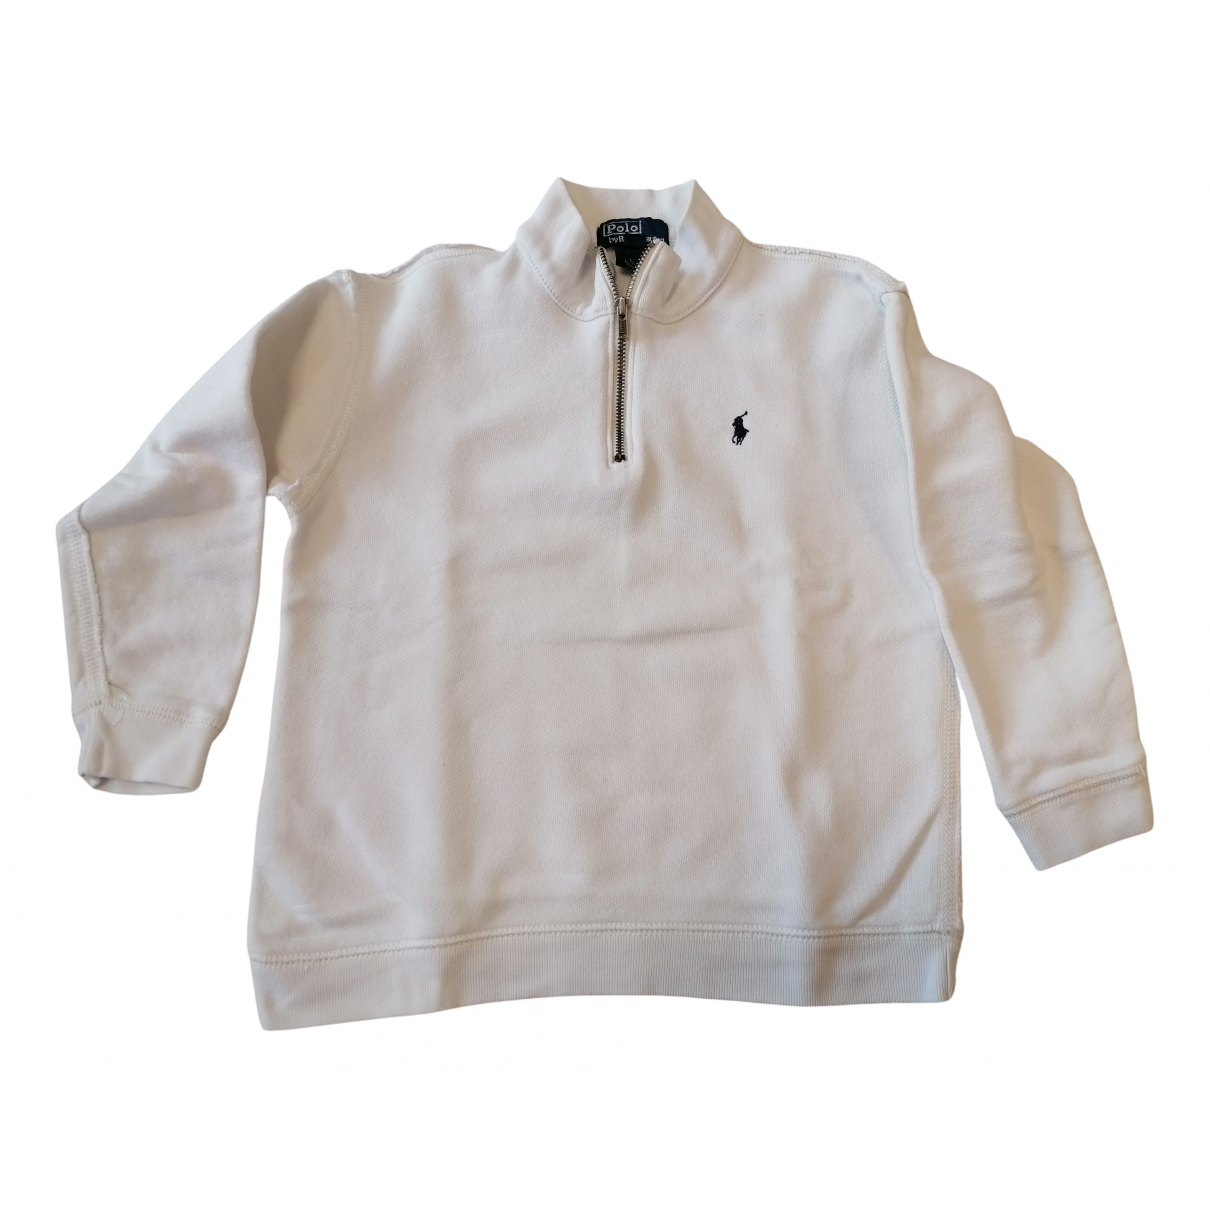 Polo Ralph Lauren N White Cotton Knitwear for Kids 3 years - up to 98cm FR